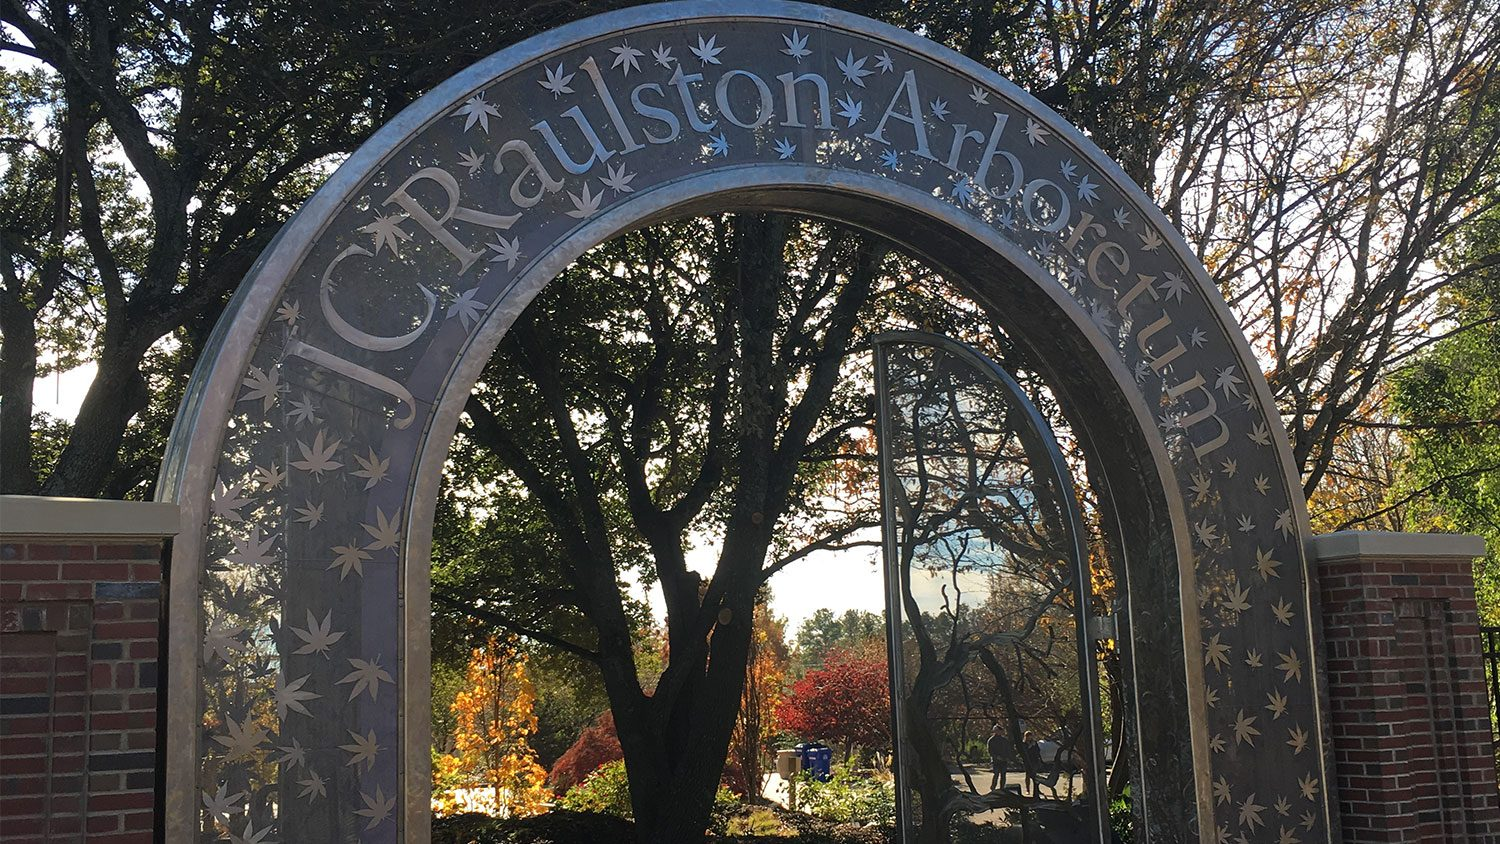 Arboretum gate in November in the early afternoon